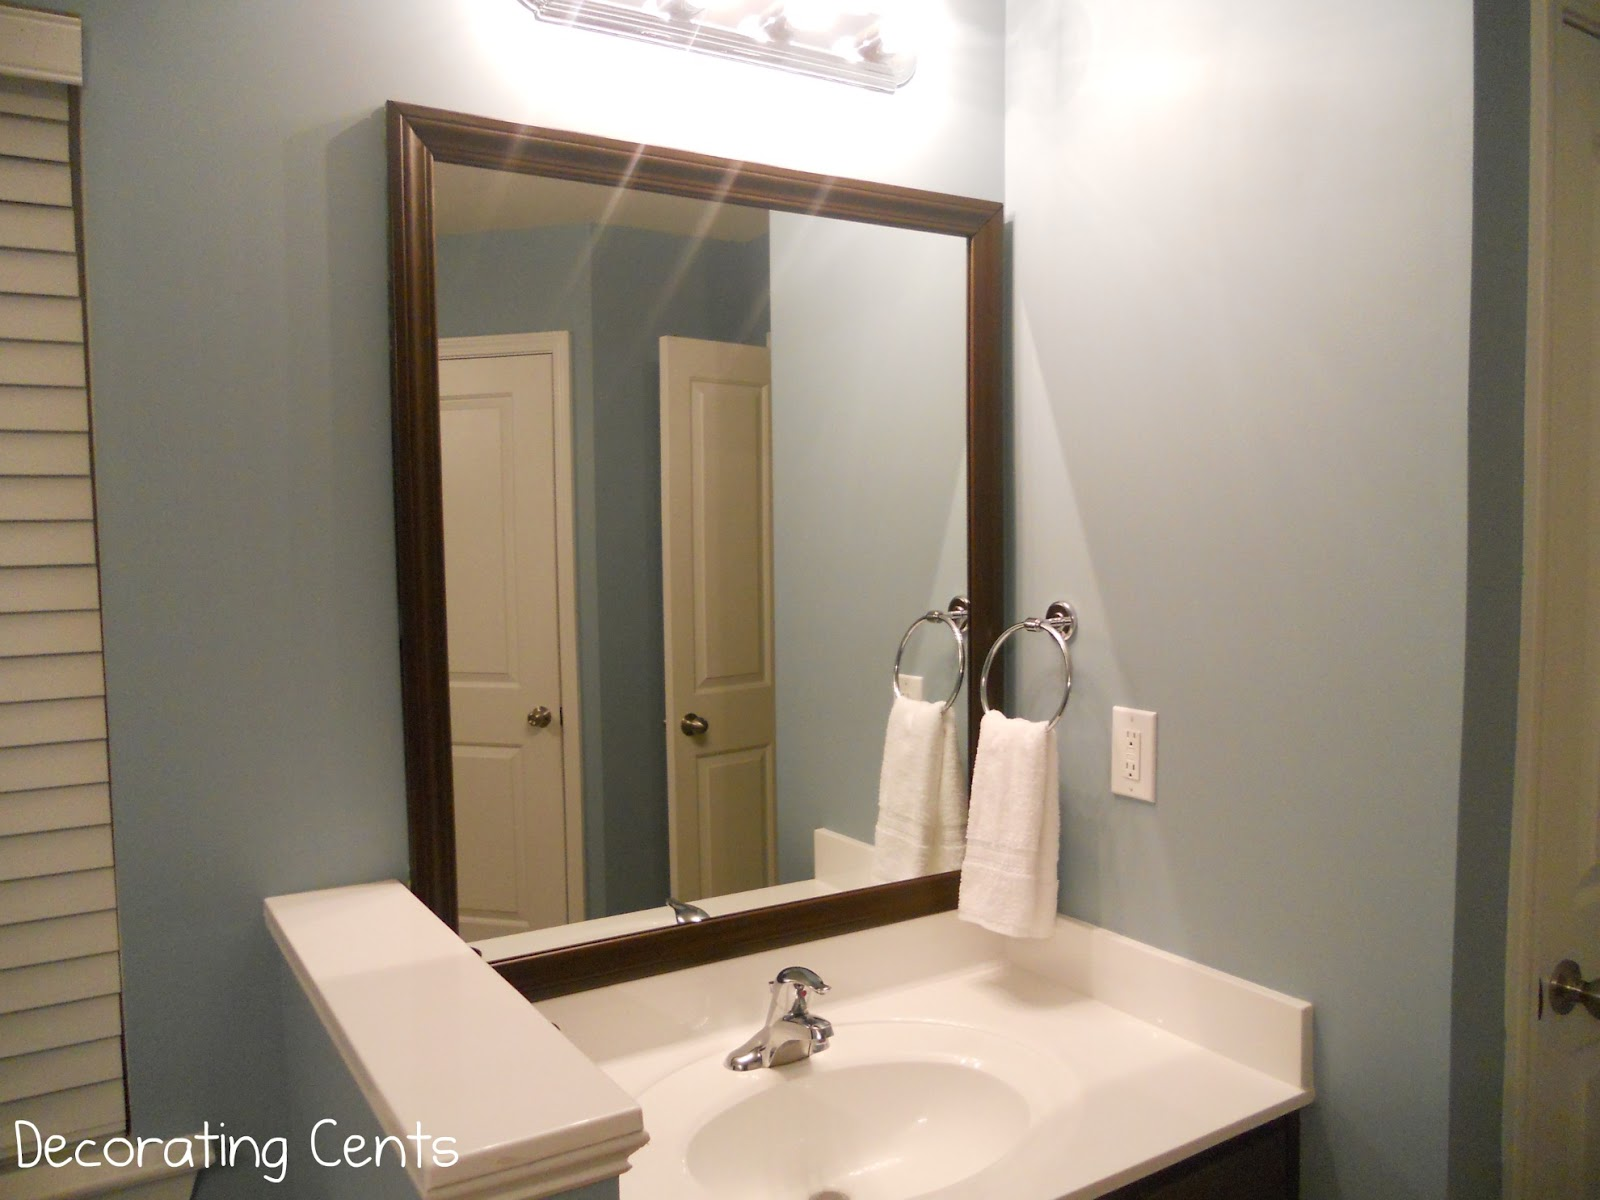 Decorating cents framing the bathroom mirrors Frames for bathroom wall mirrors